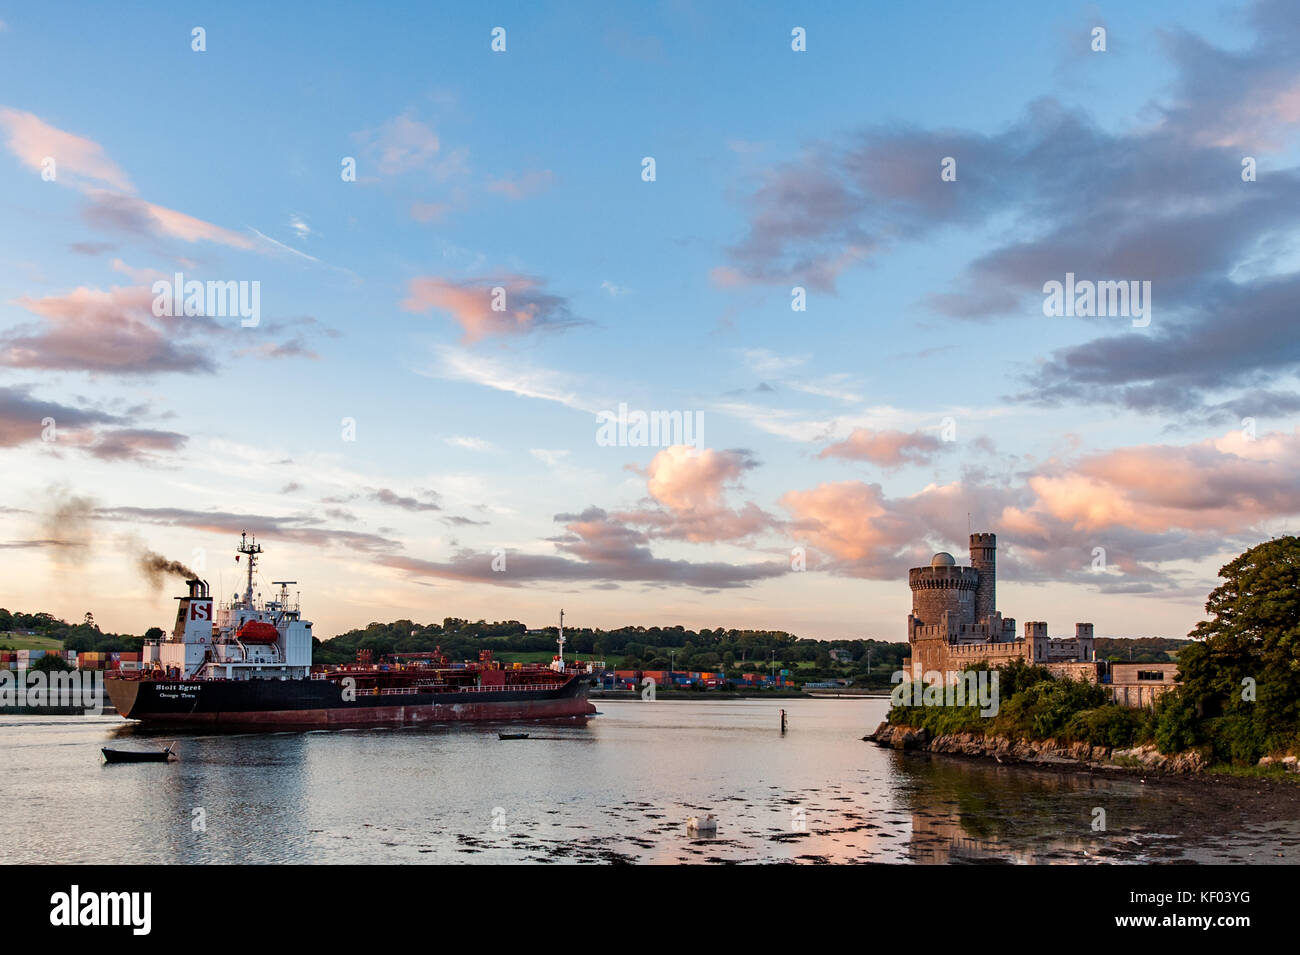 mv-stolt-egret-sails-past-blackrock-castle-having-just-departed-from-KF03YG.jpg